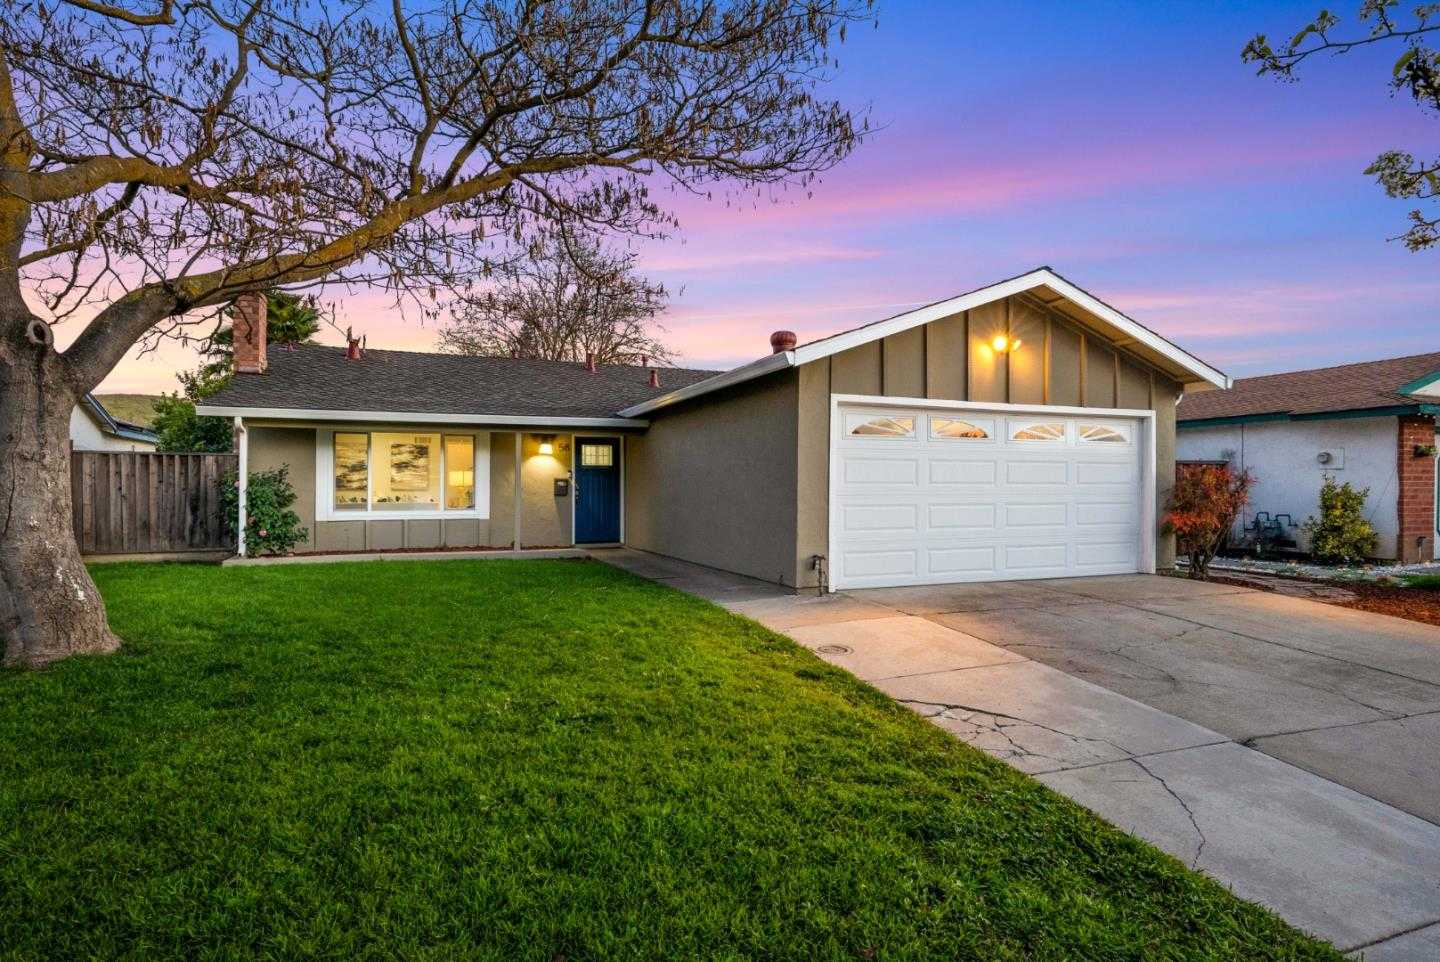 $998,888 - 4Br/2Ba -  for Sale in San Jose